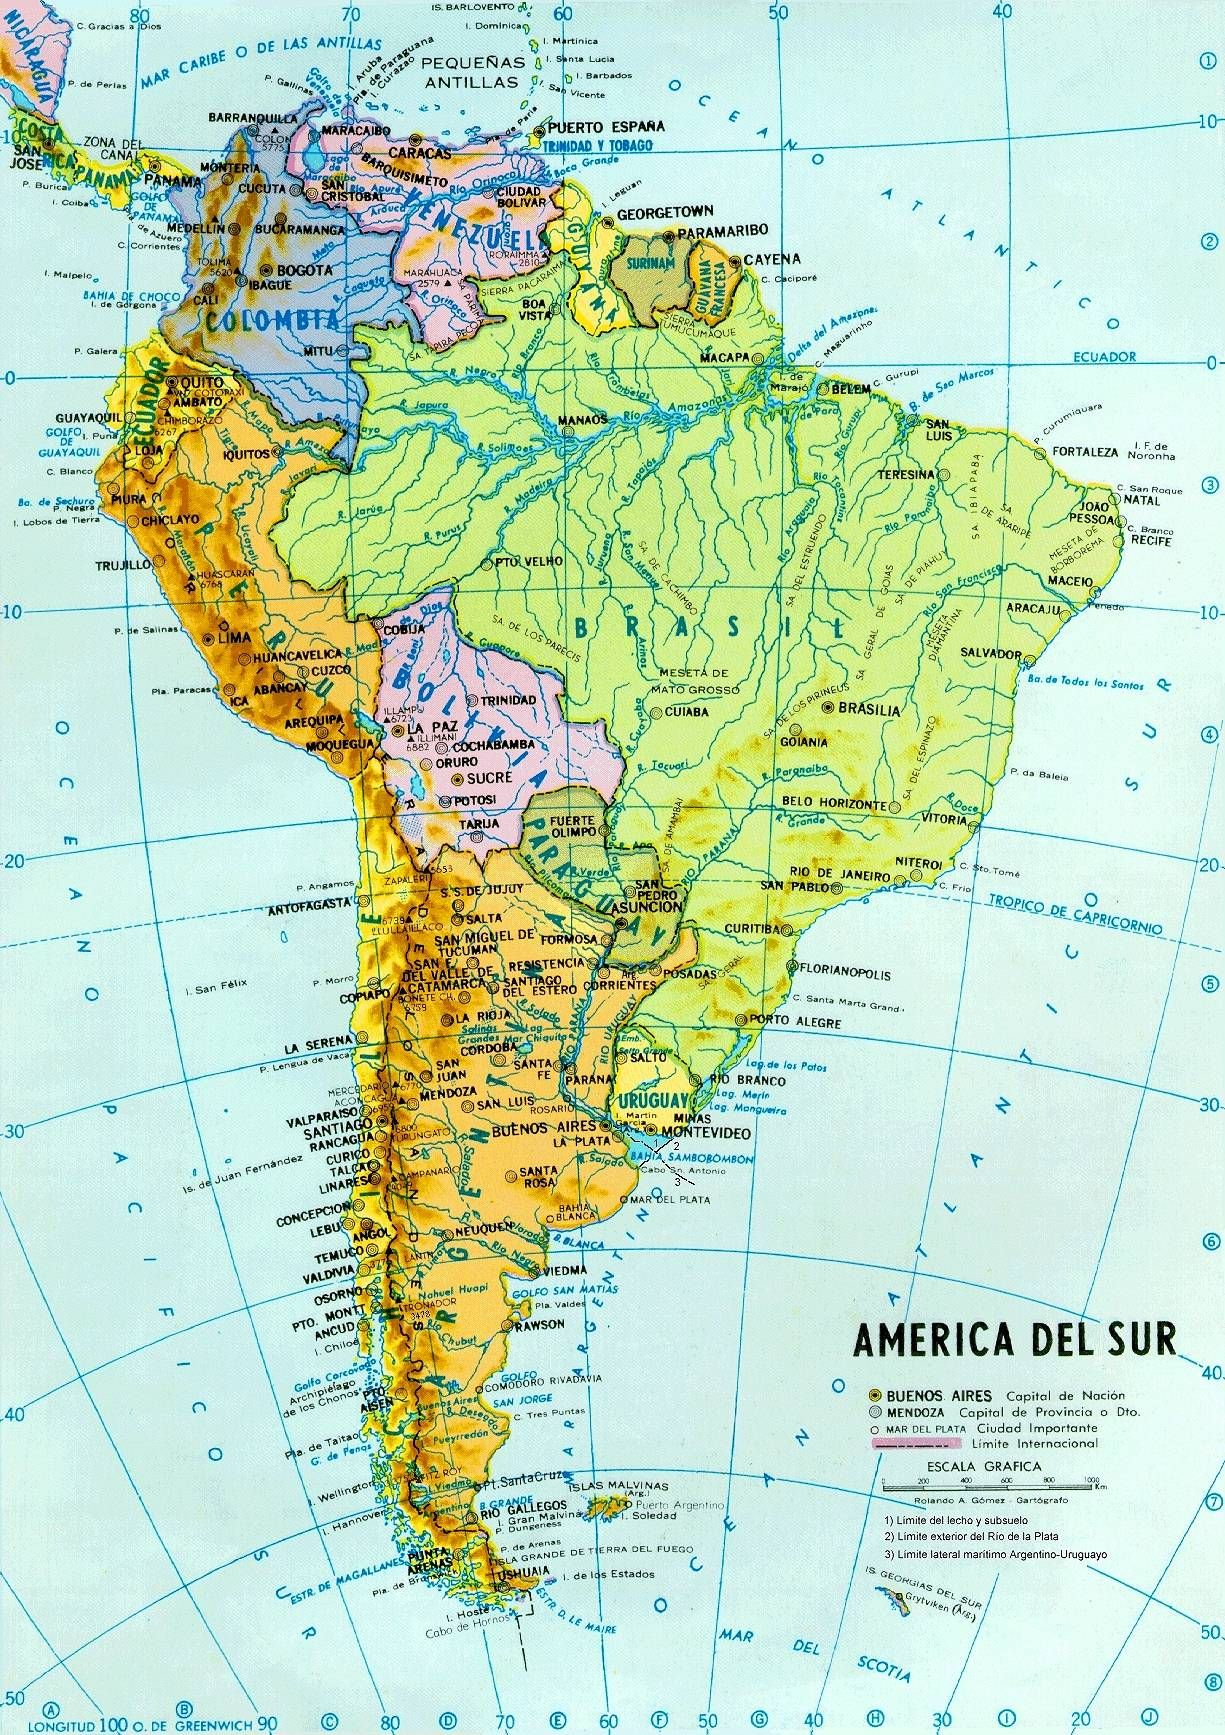 Epingle Par Nguyen Minh Uyen Sur South America Carte Amerique